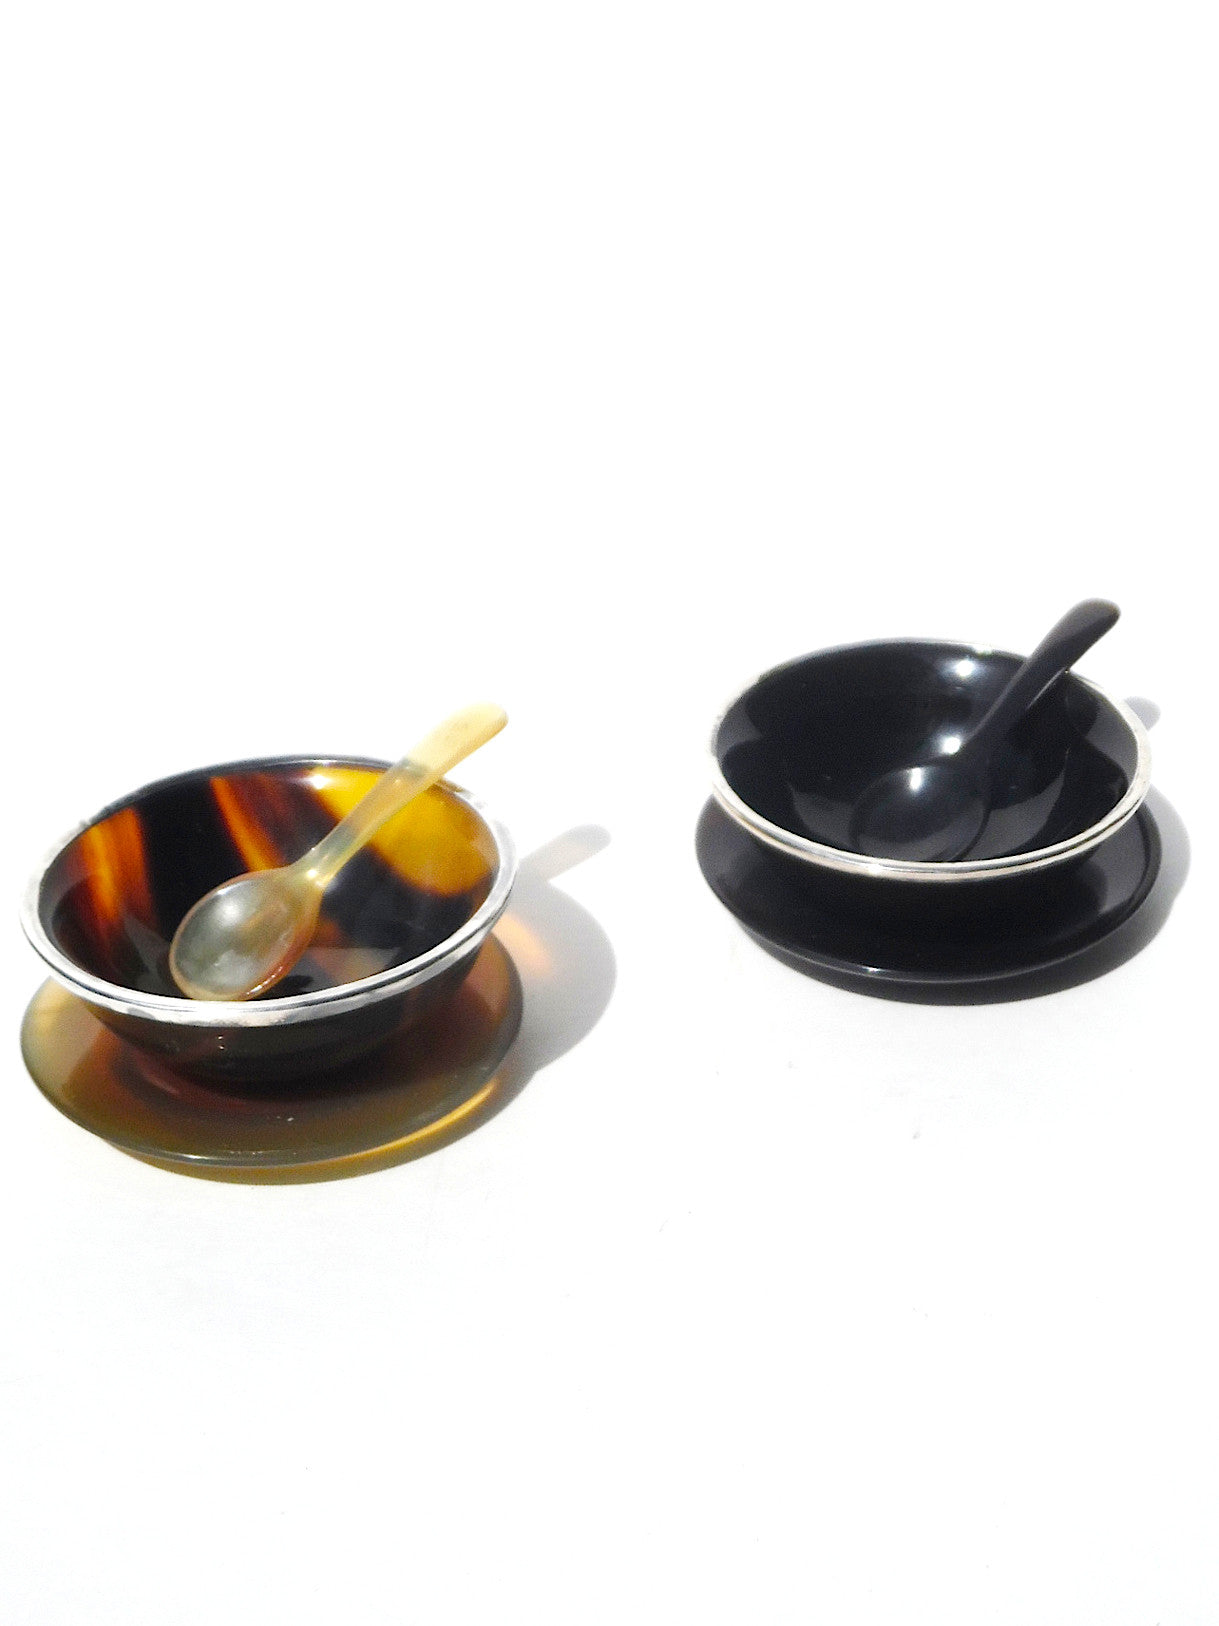 SALT AND PEPPER SET HORN AND STERLING SILVER